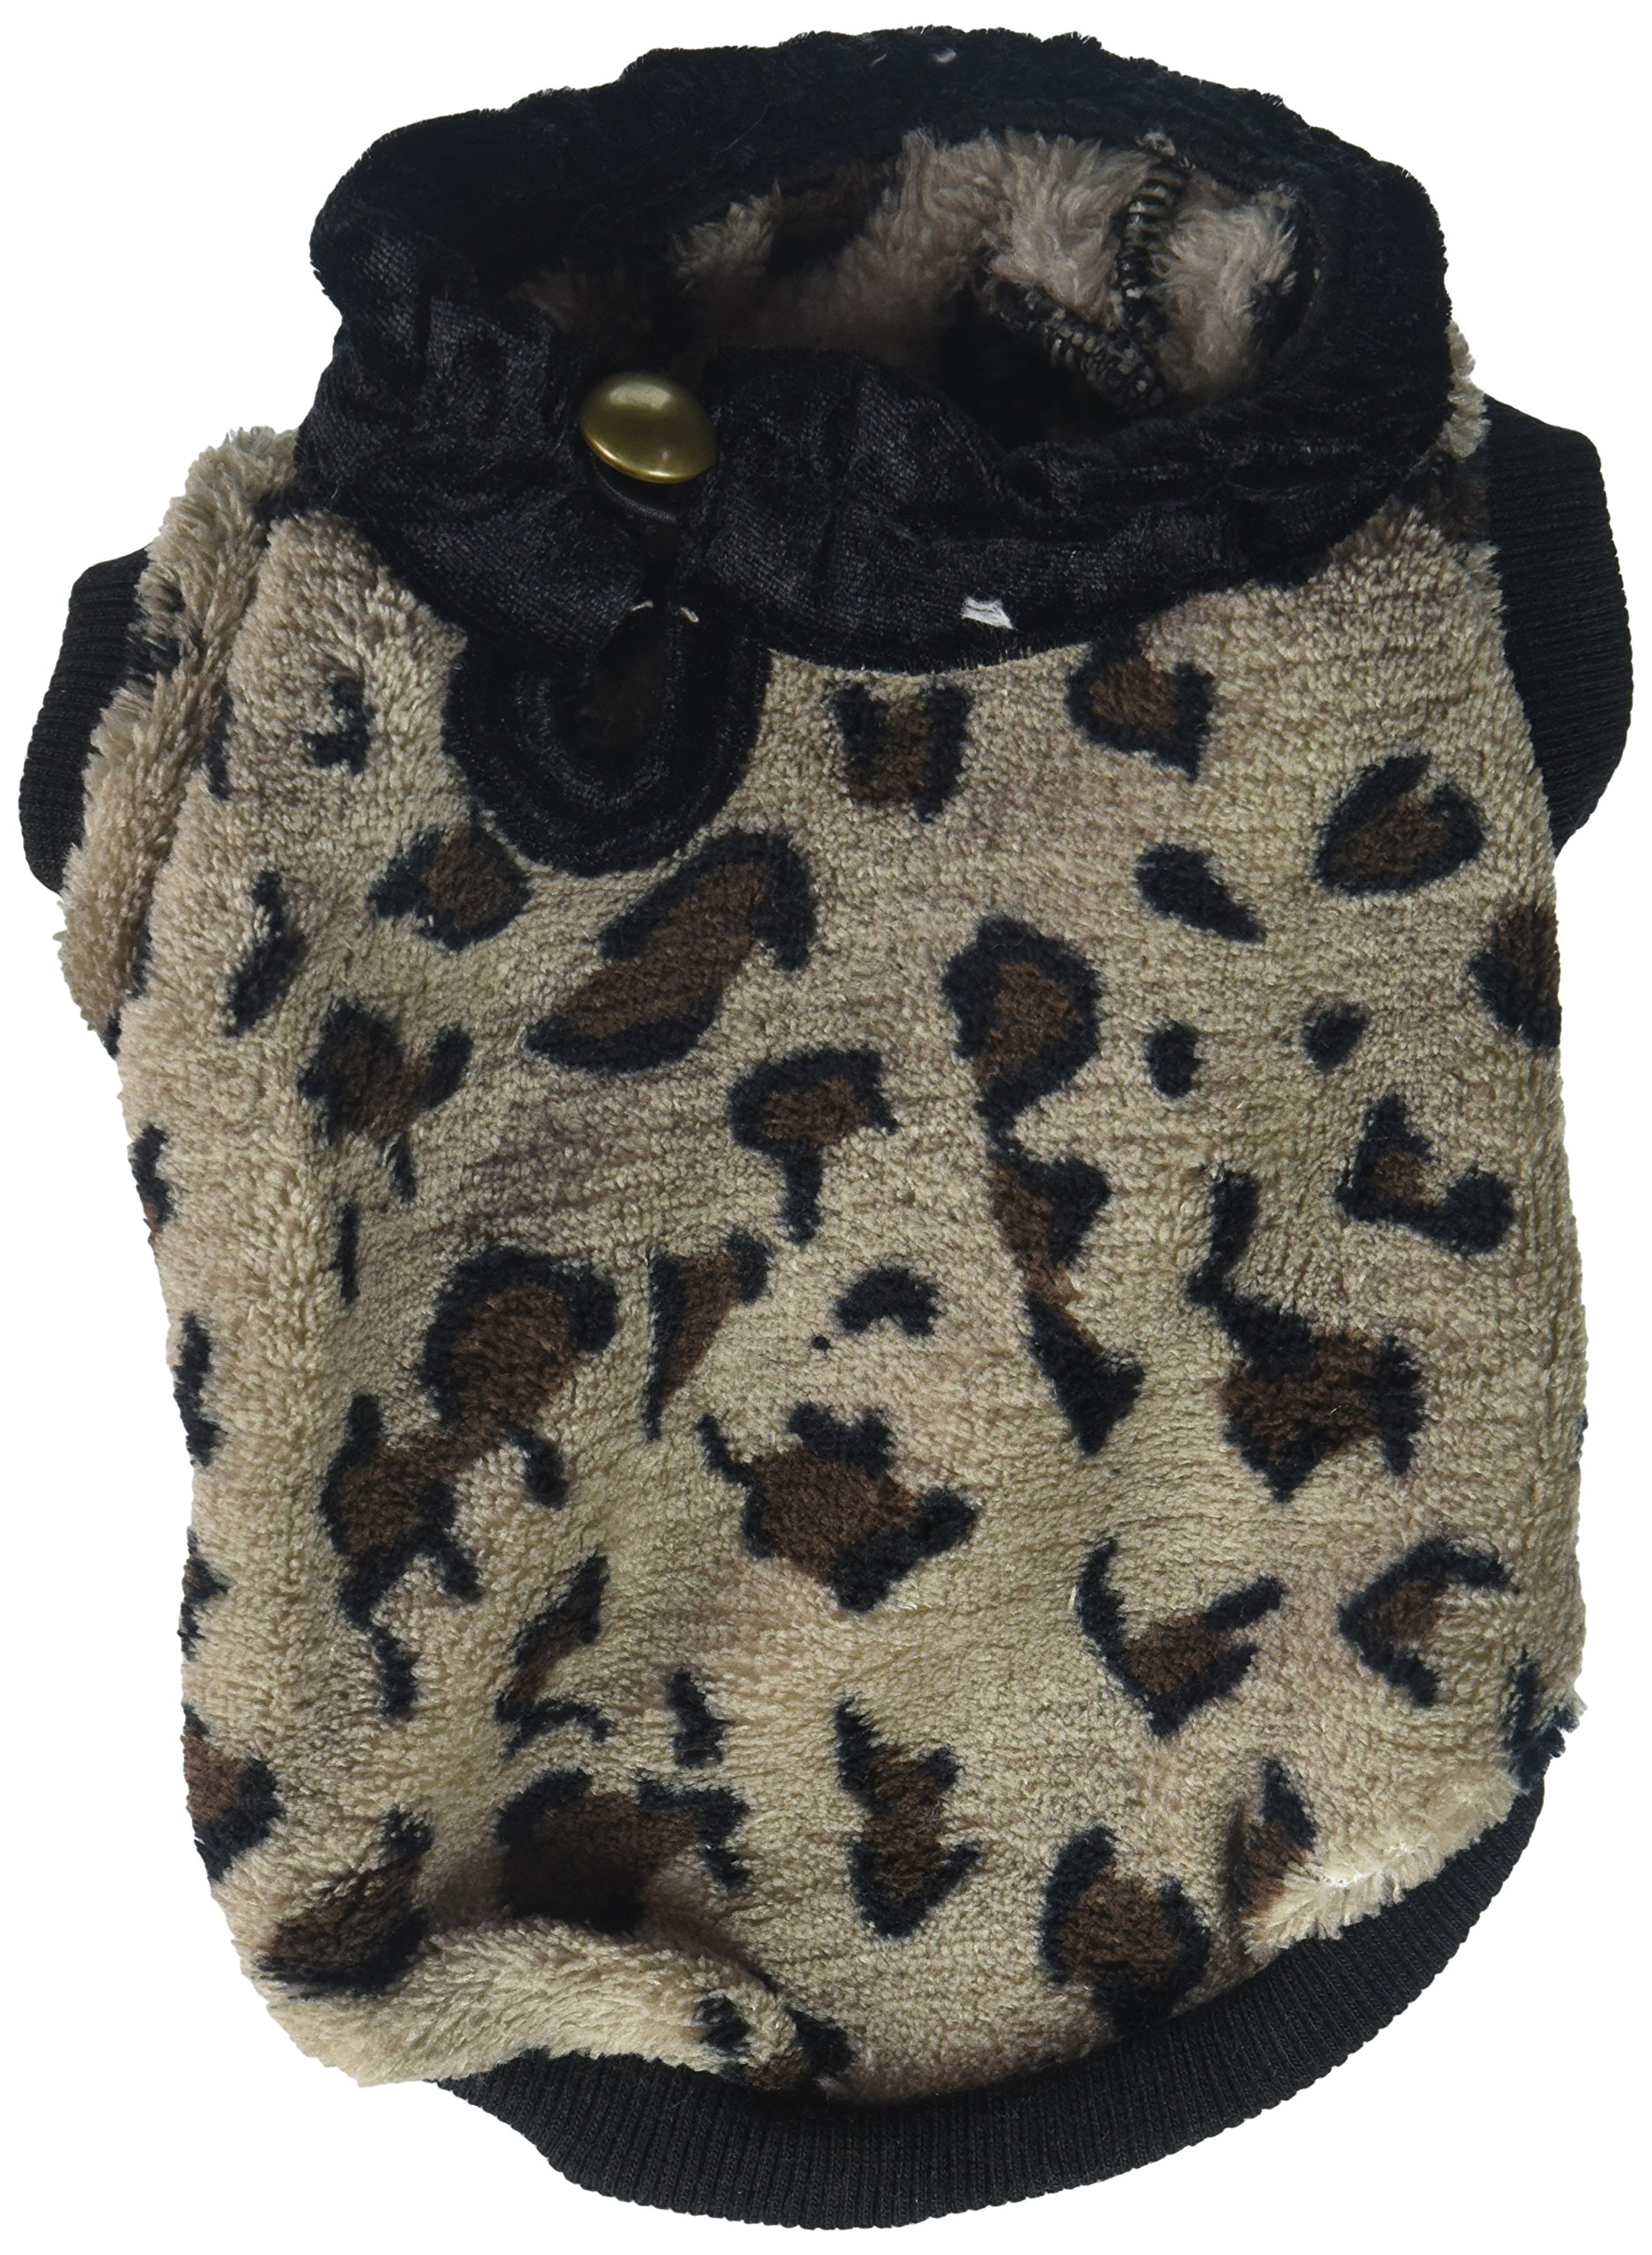 Brown Leopard Print Fleece Sweater [FOR SMALL DOGS], Small